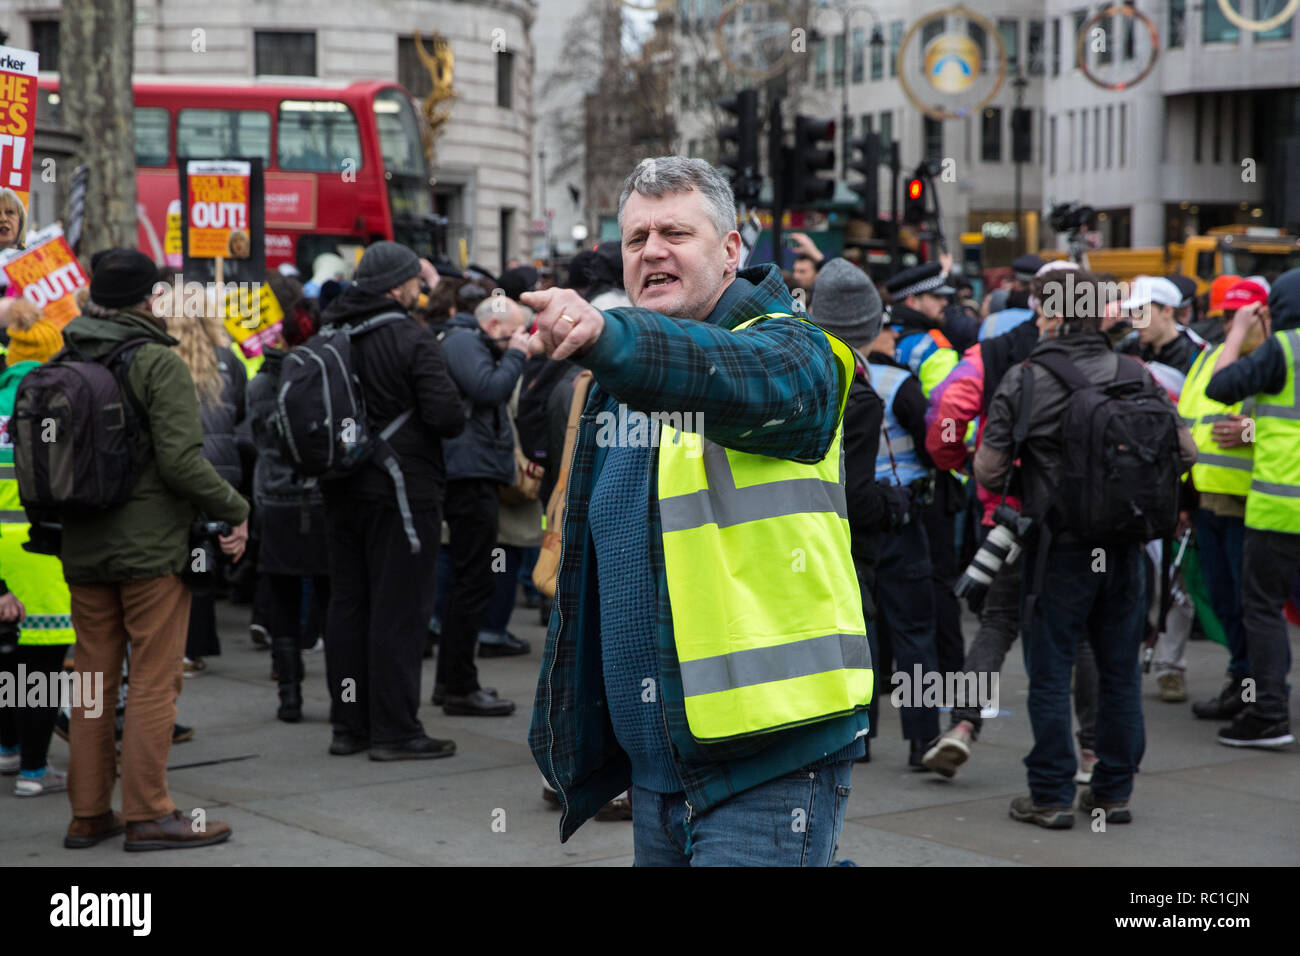 London, UK. 12th January, 2019. A man wearing a yellow vest shouts at protesters taking part in a 'Britain is Broken: General Election Now' demonstration organised by the People's Assembly Against Austerity. Some members of both groups were wearing yellow vests in solidarity with the 'gilets jaunes' in France. Credit: Mark Kerrison/Alamy Live News - Stock Image